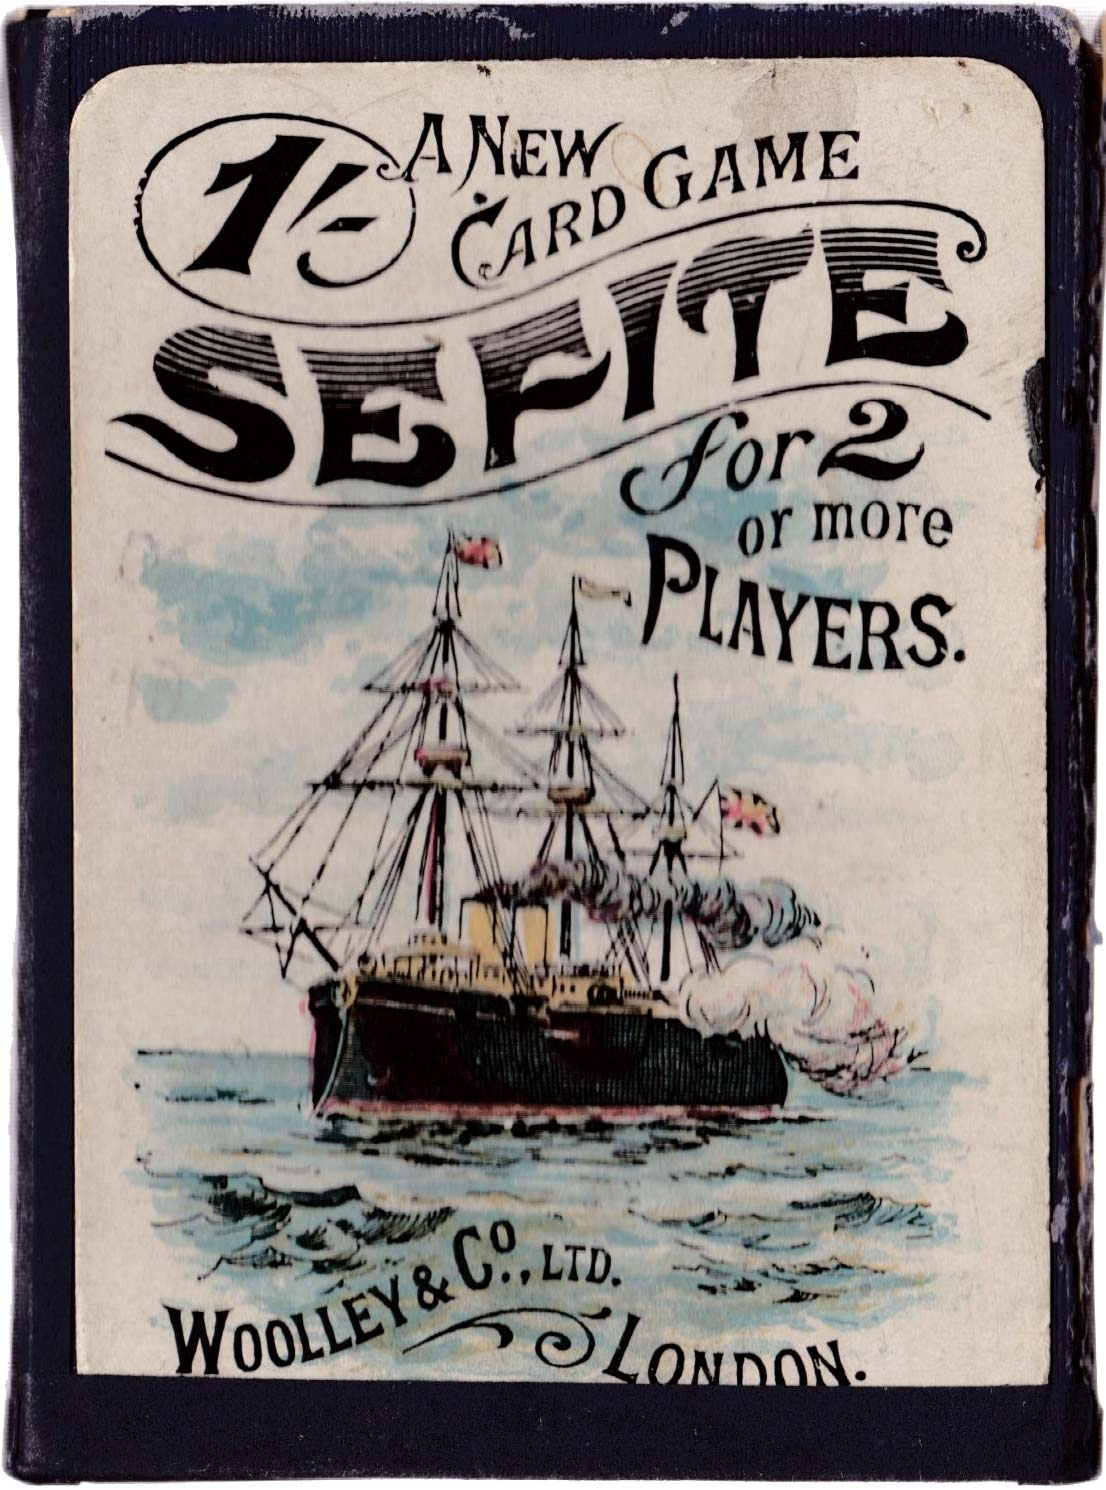 """Sefite"" card game manufactured by Woolley & Co Ltd, London c.1905"